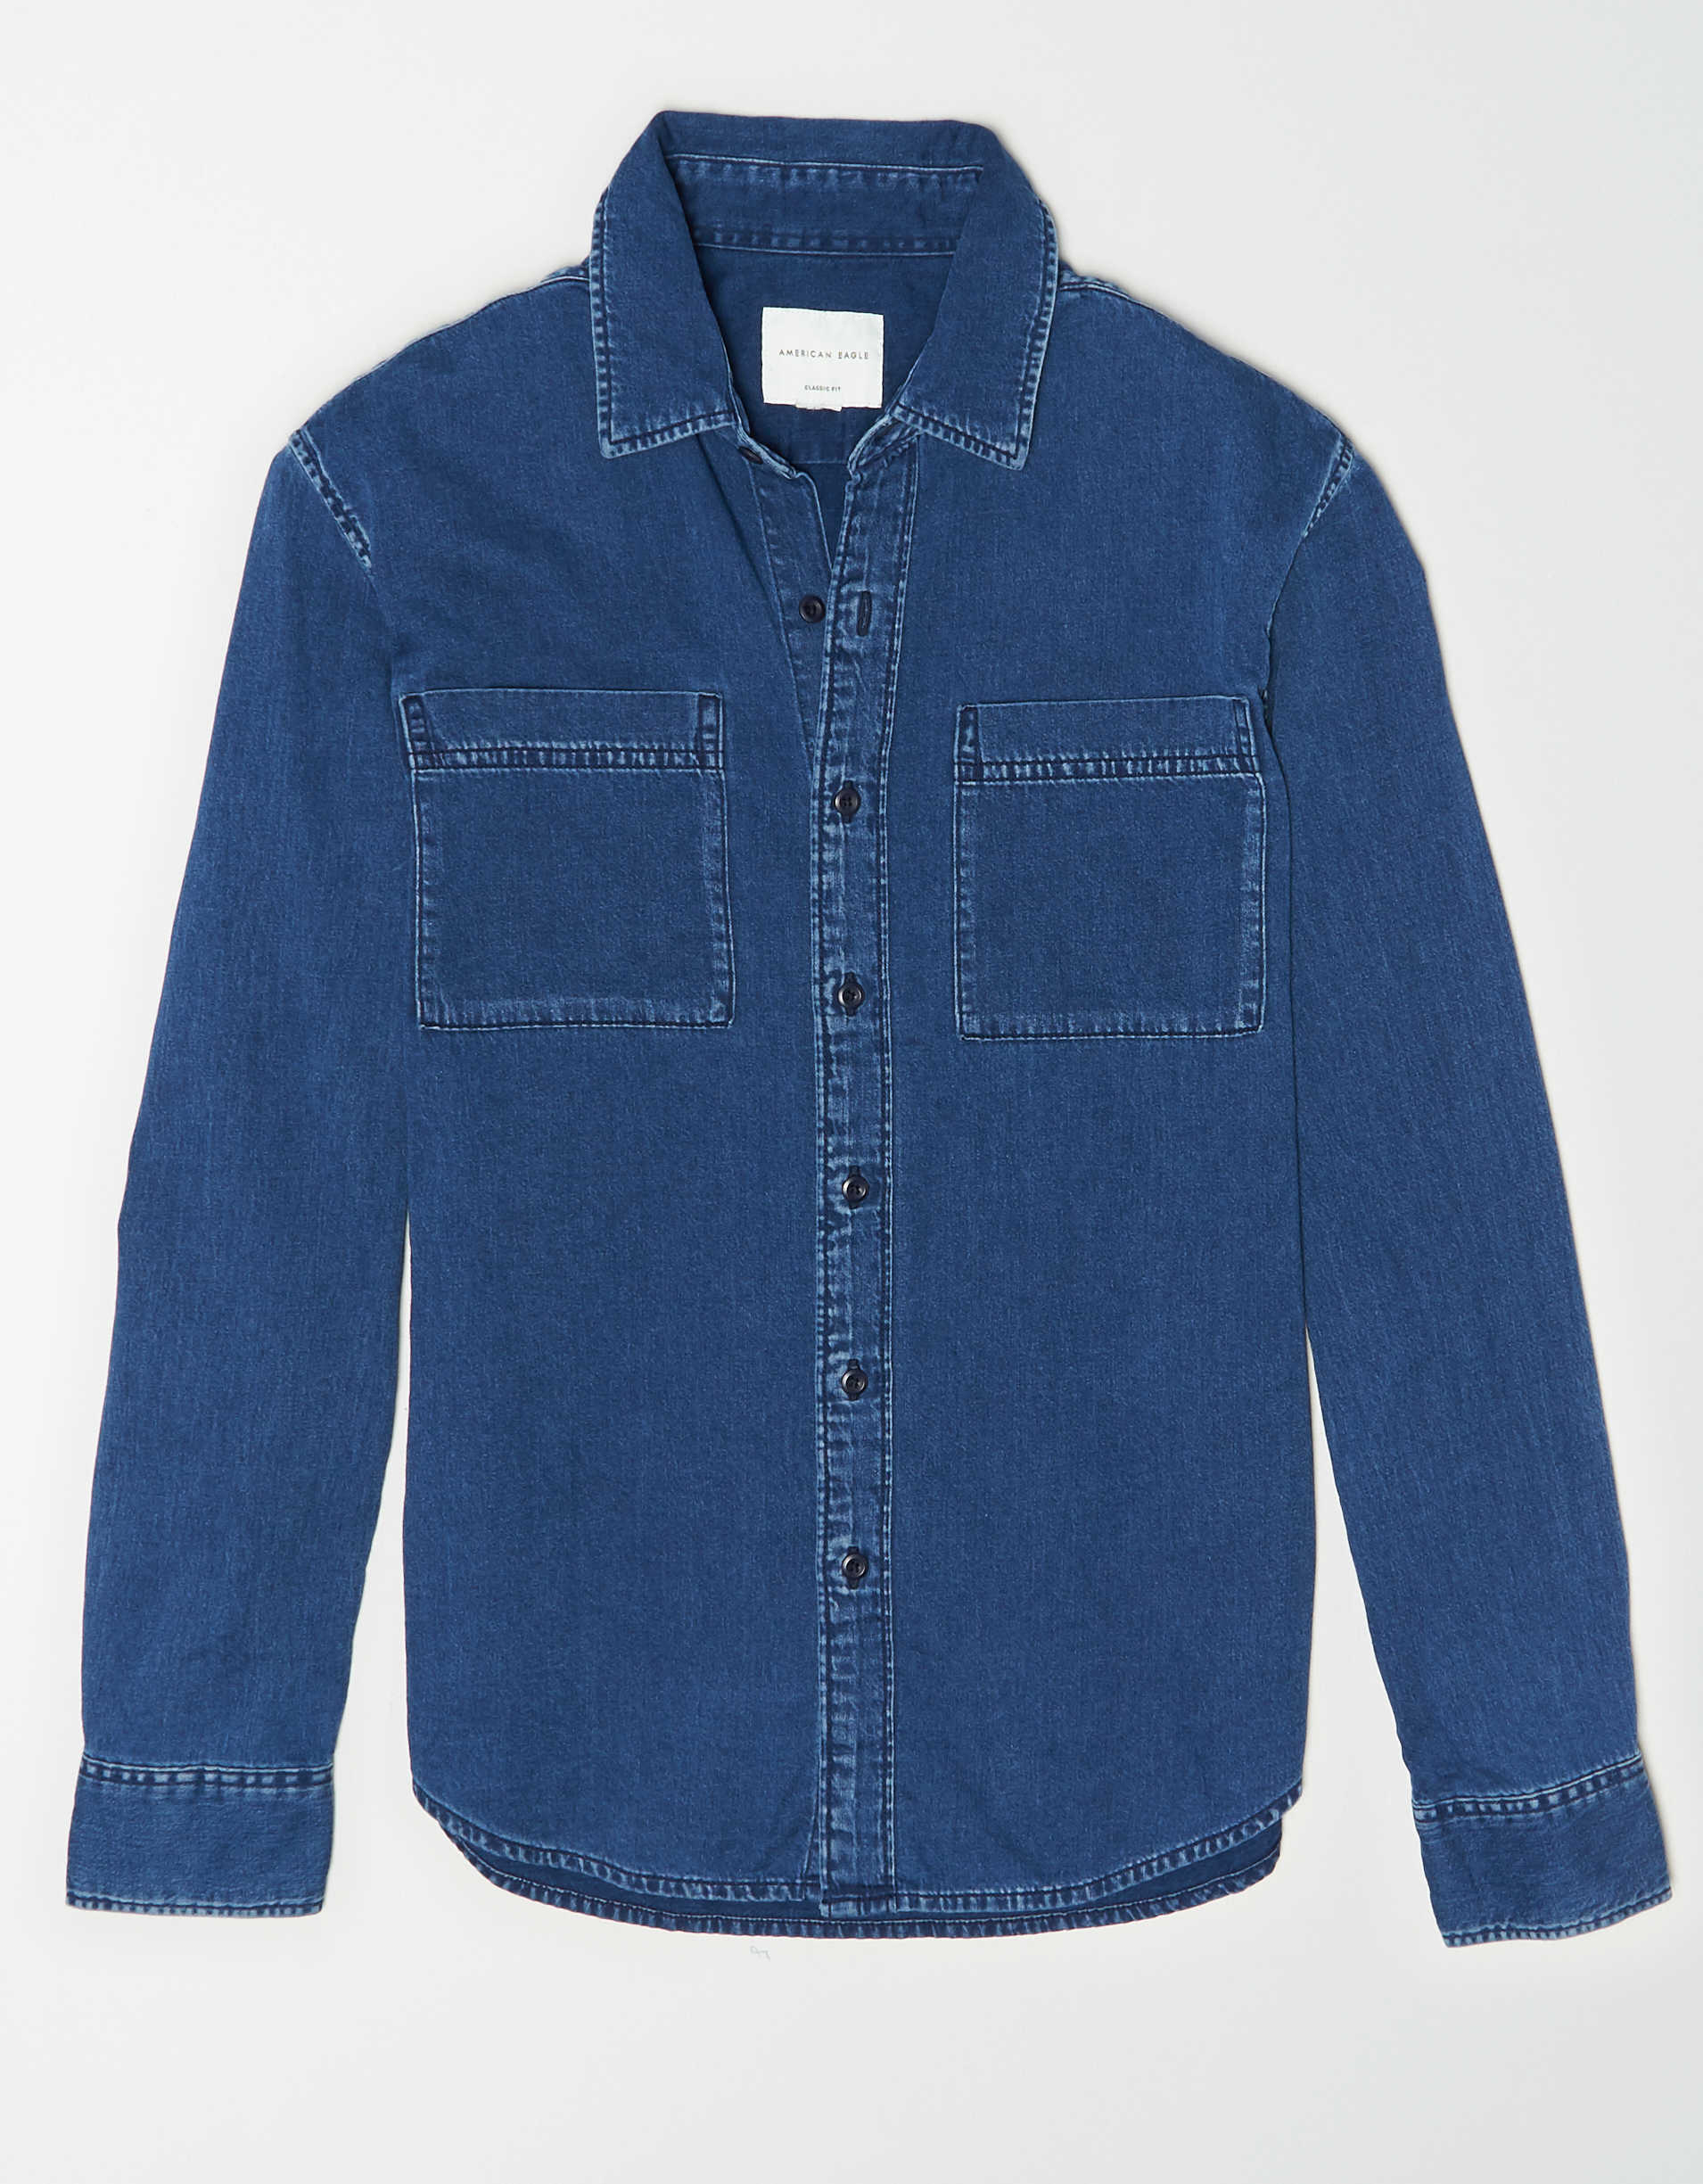 AE Denim Shirt